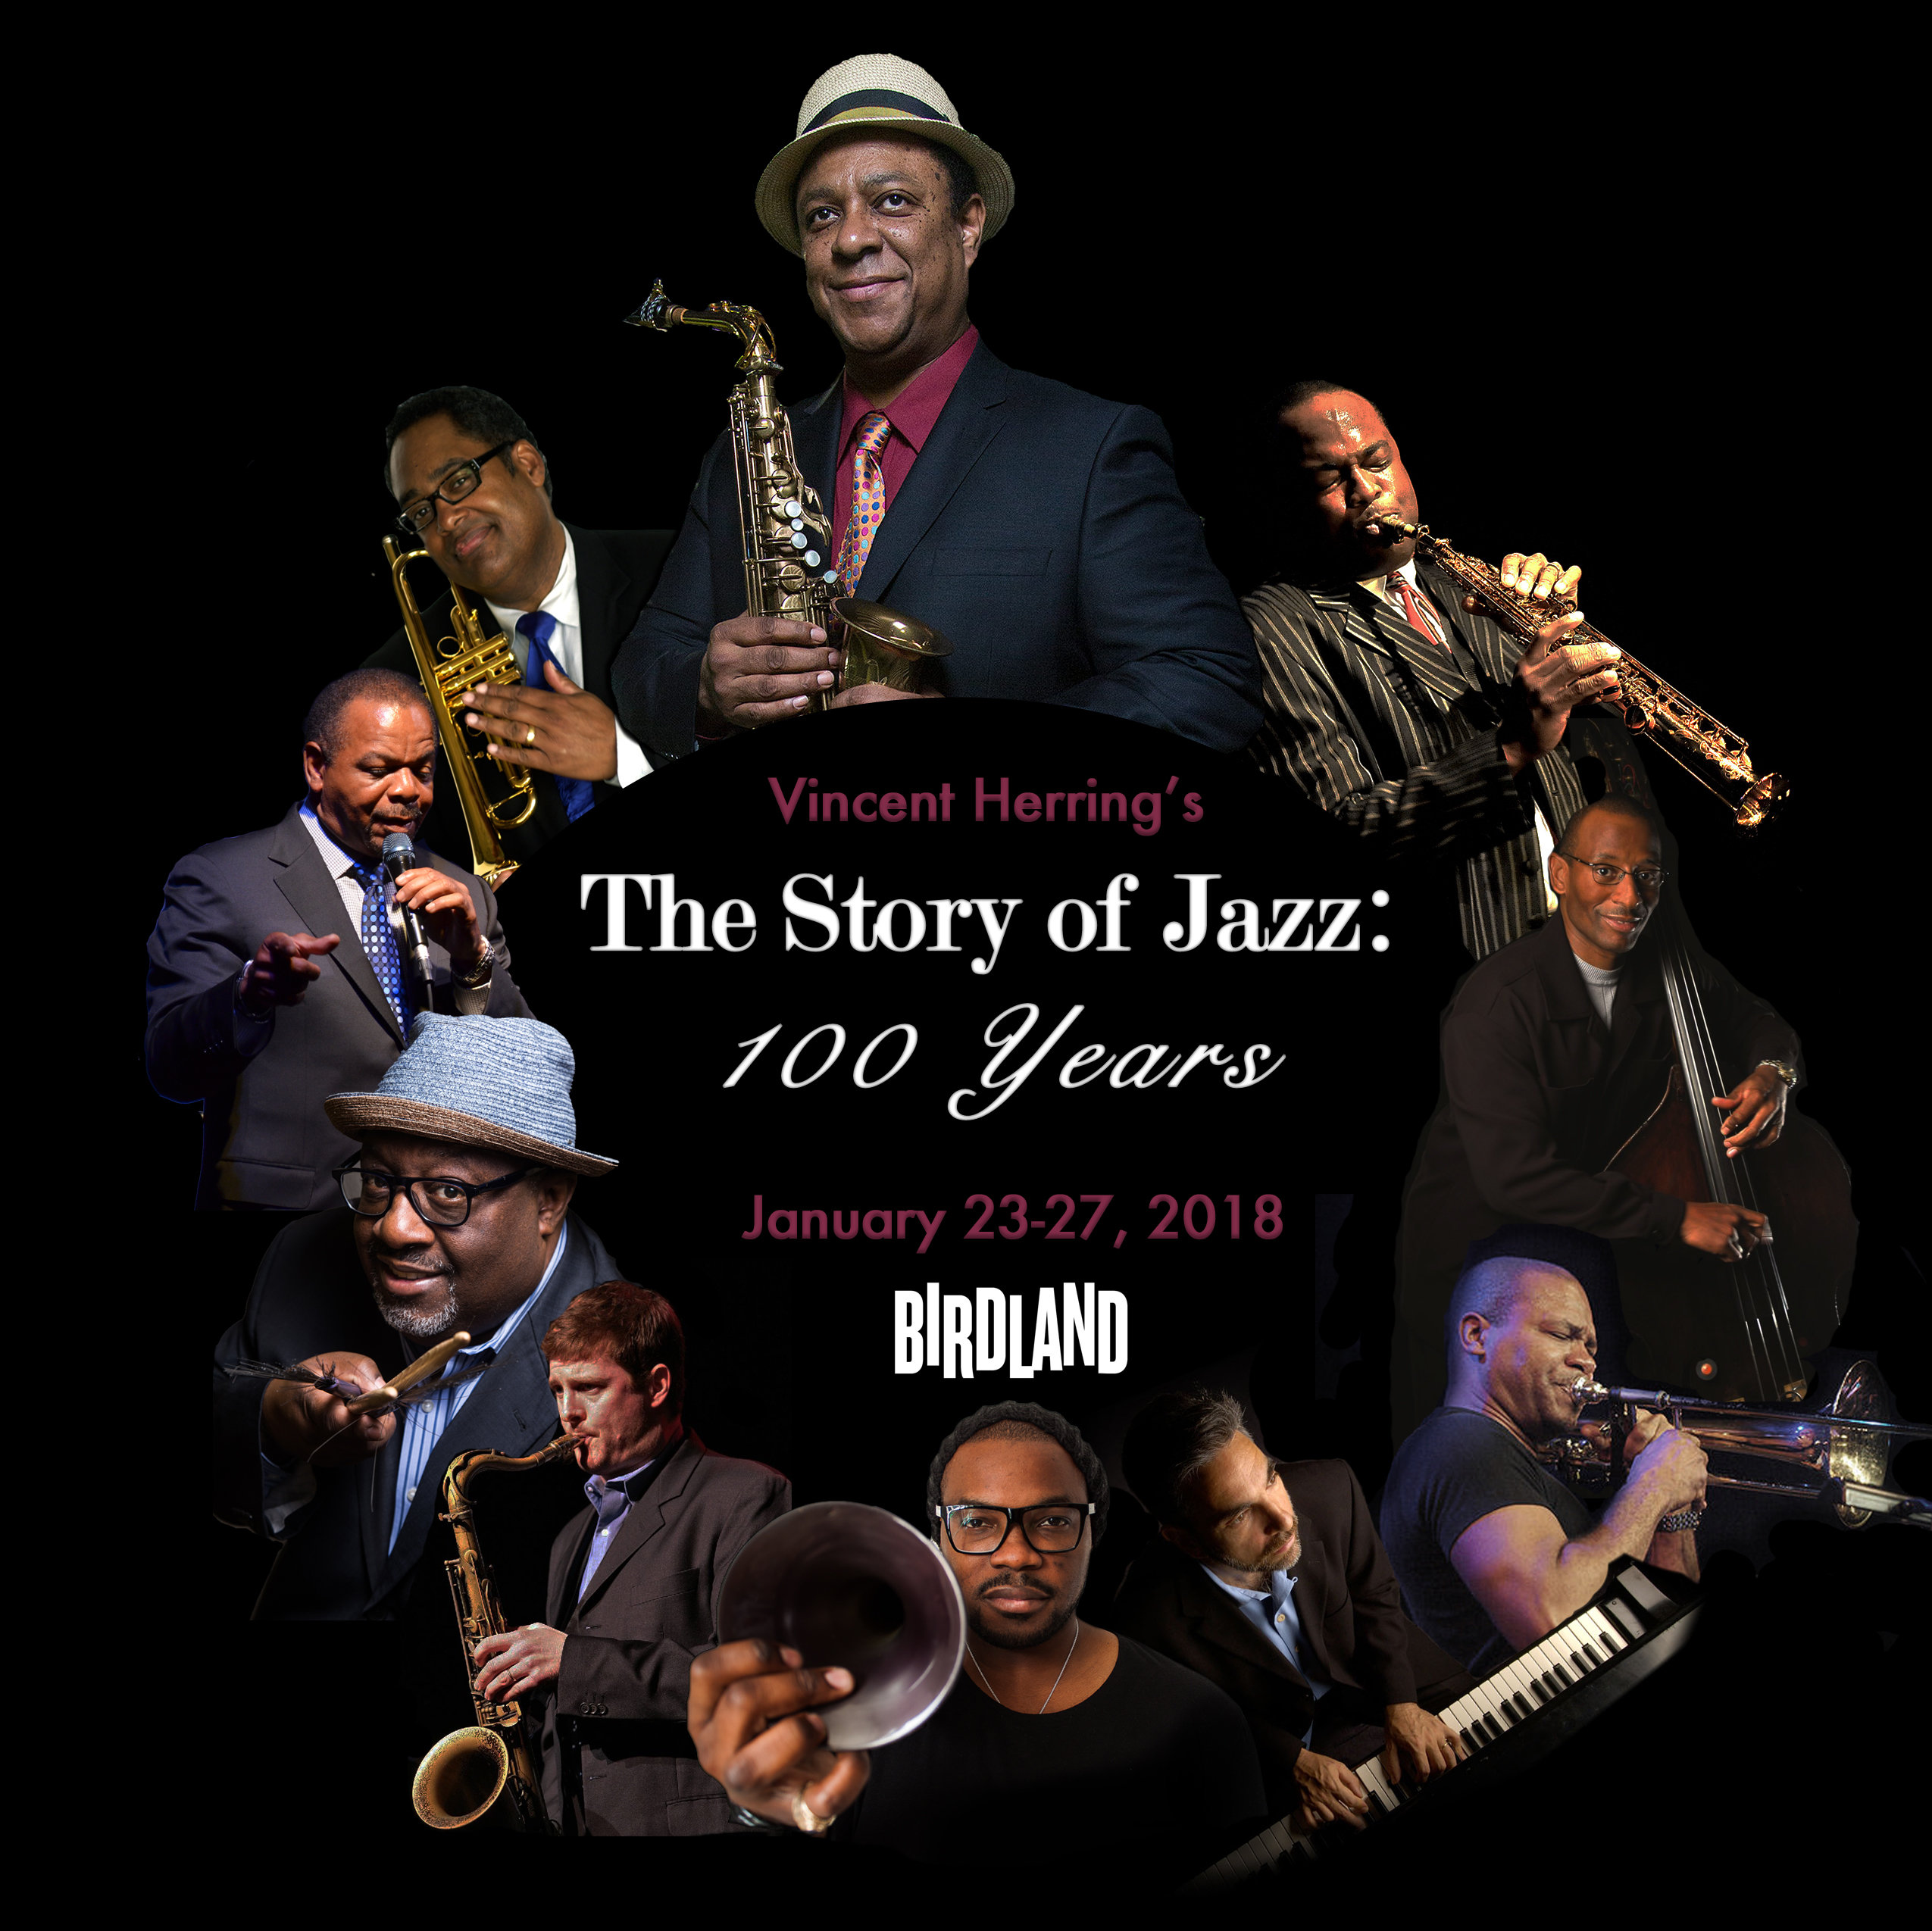 Vincent Herring Presents: The Story of Jazz: 100 Years, at Birdland, New York